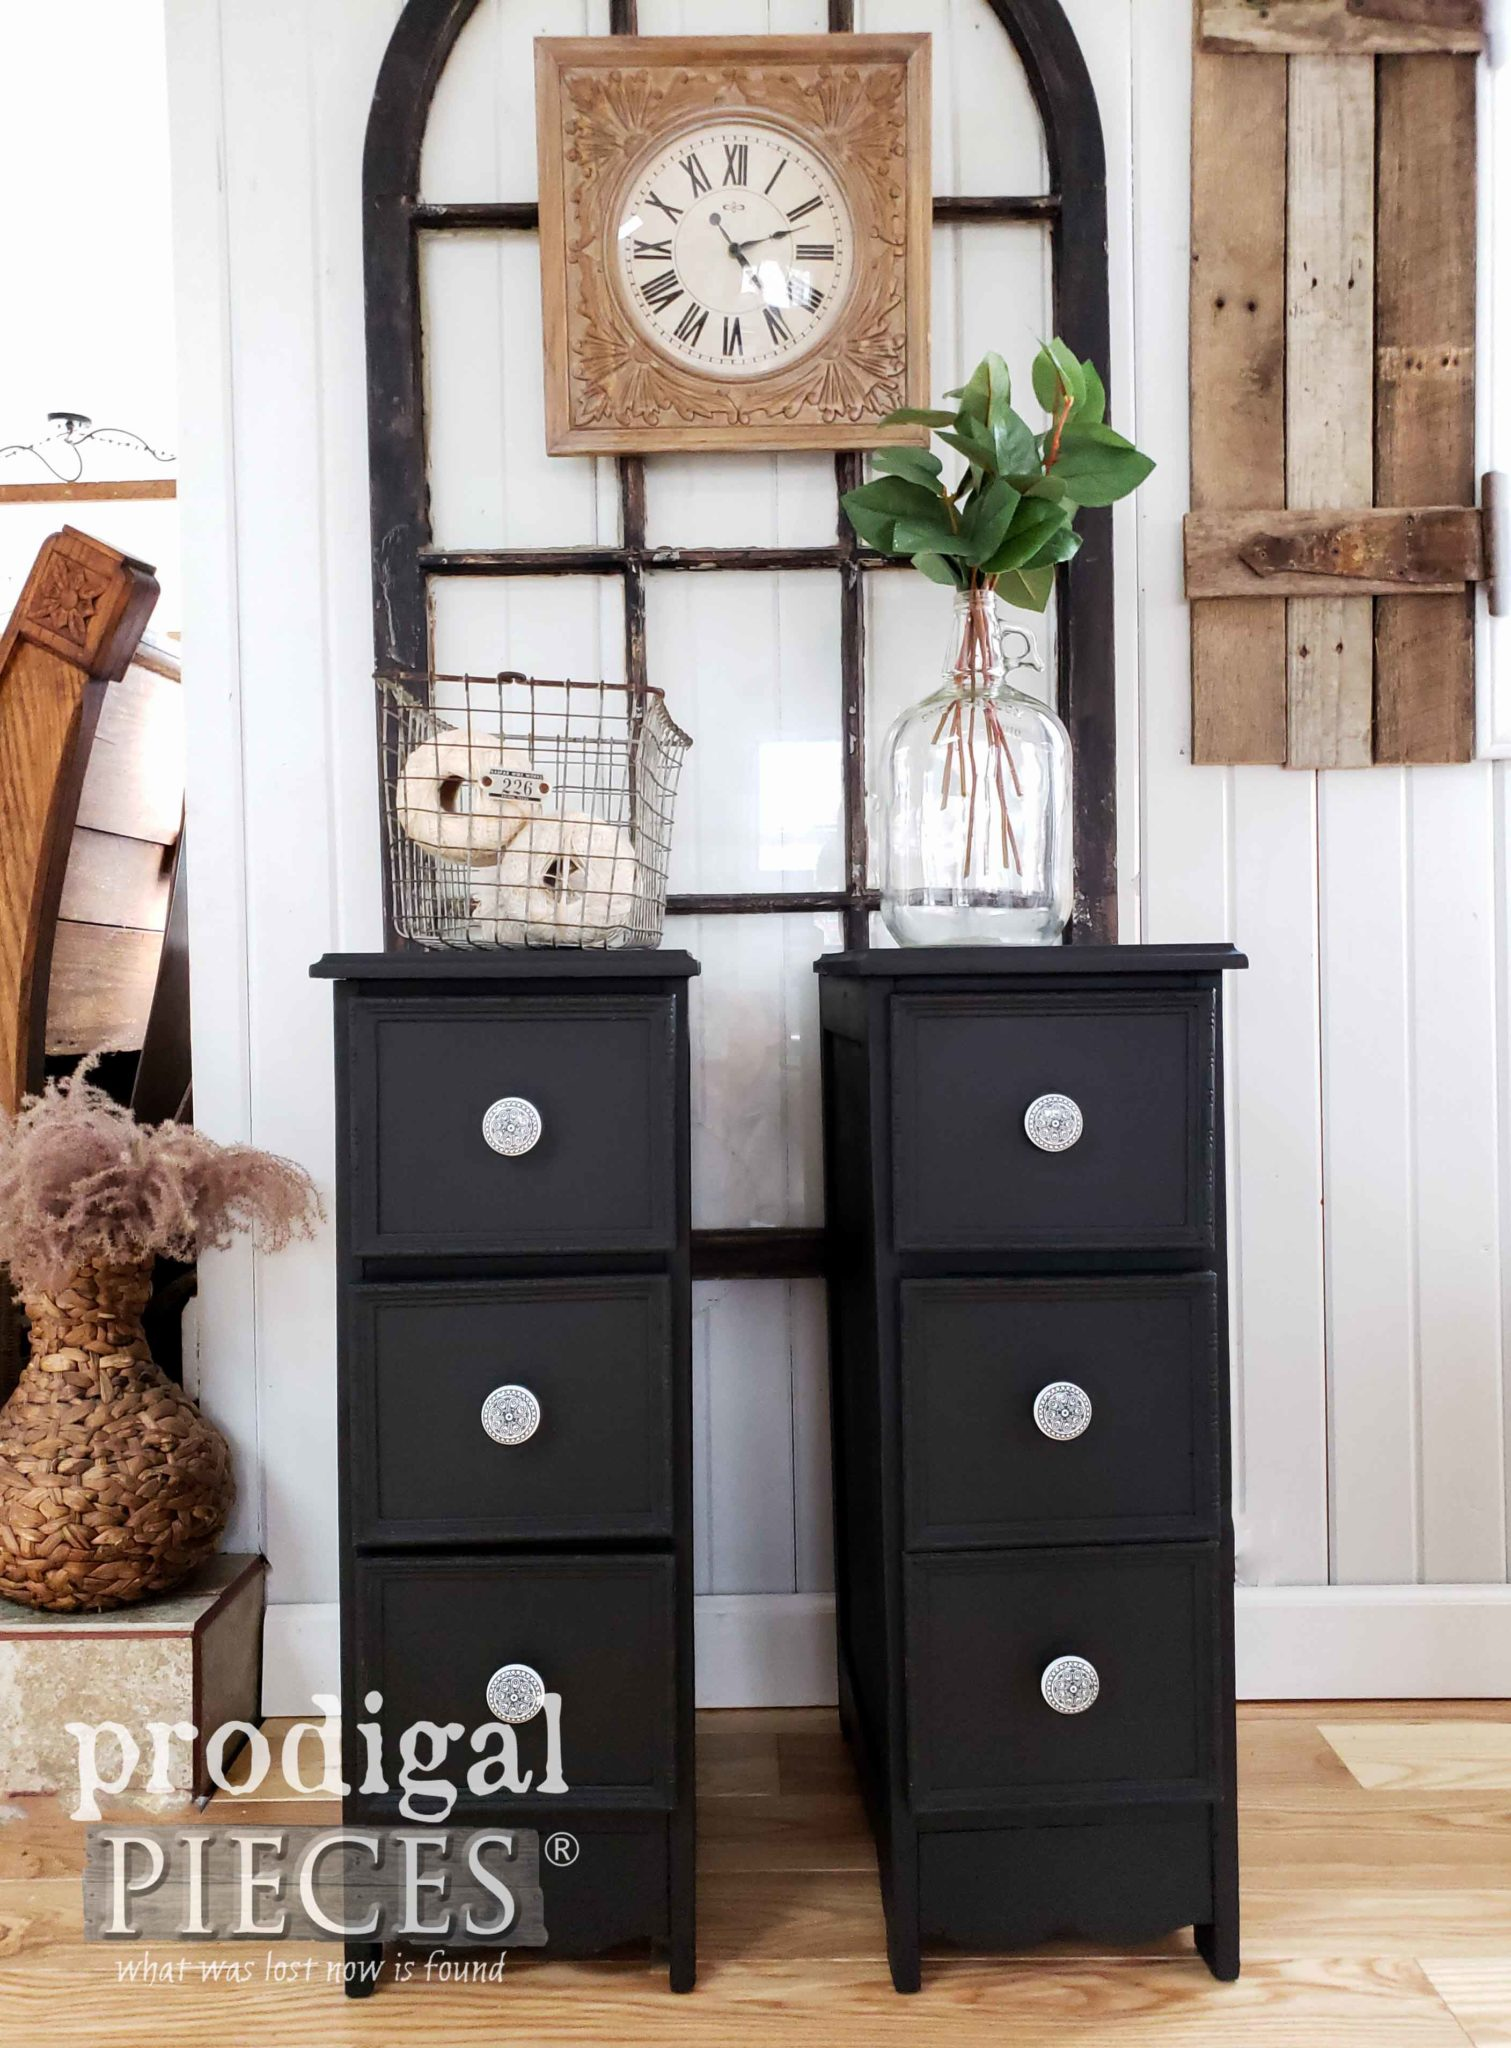 Vintage Farmhouse Style Nightstands in Black Created from an Upcycled Desk by Larissa of Prodigal Pieces | Video tutorial at prodigalpieces.com #prodigalpieces #diy #farmhouse #furniture #home #homedecor #homedecorideas #vintage